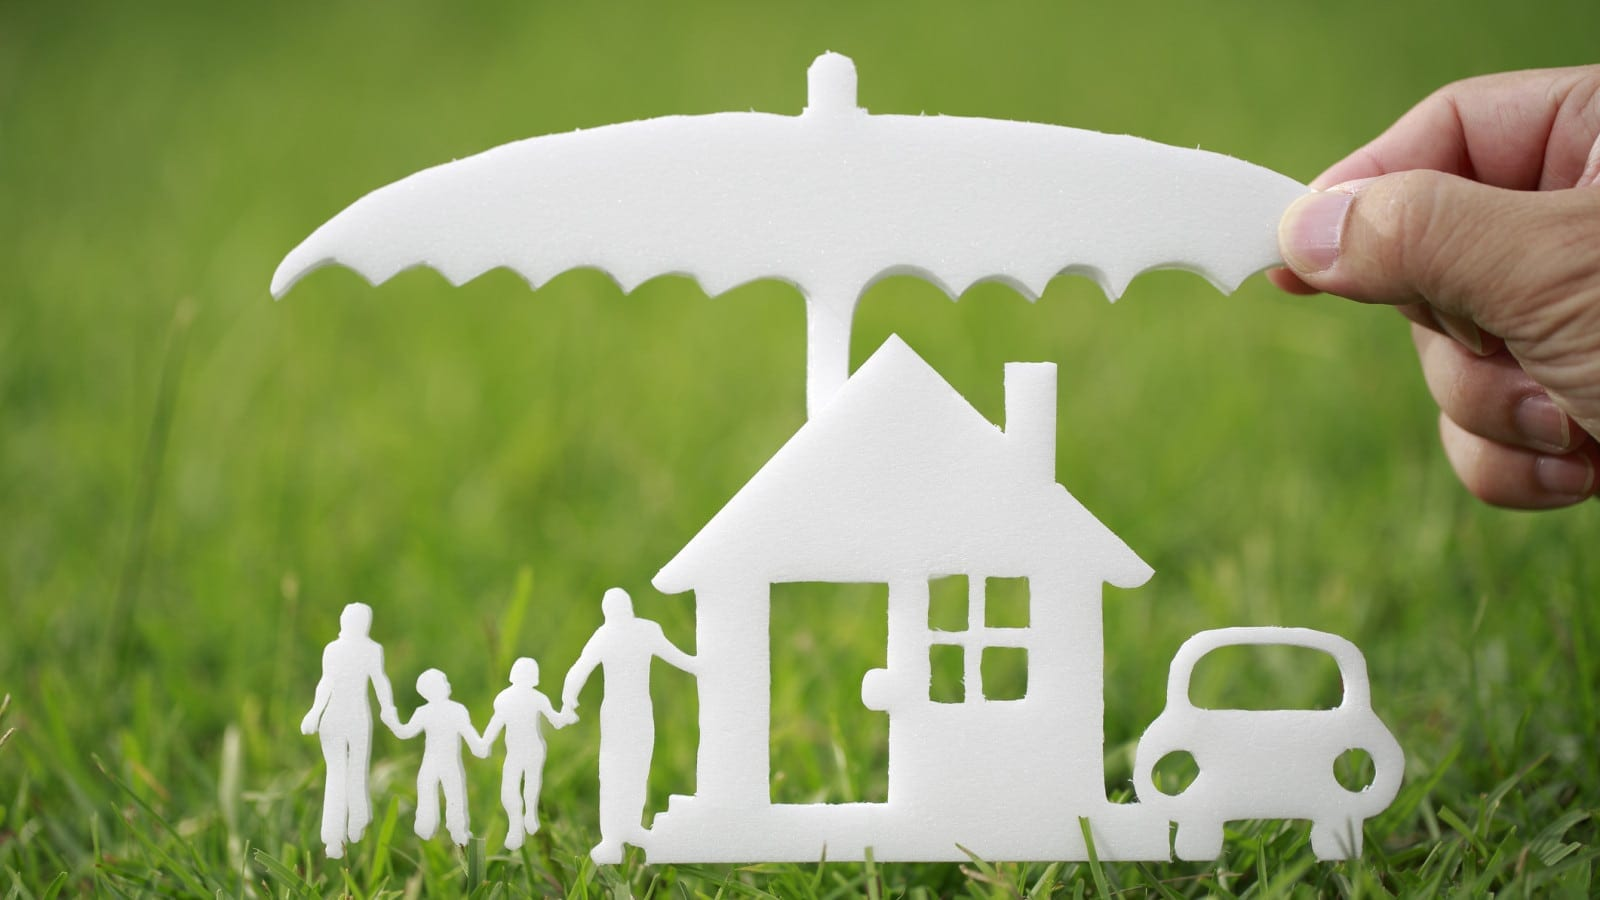 Umbrella Protecting Home Stock Photo